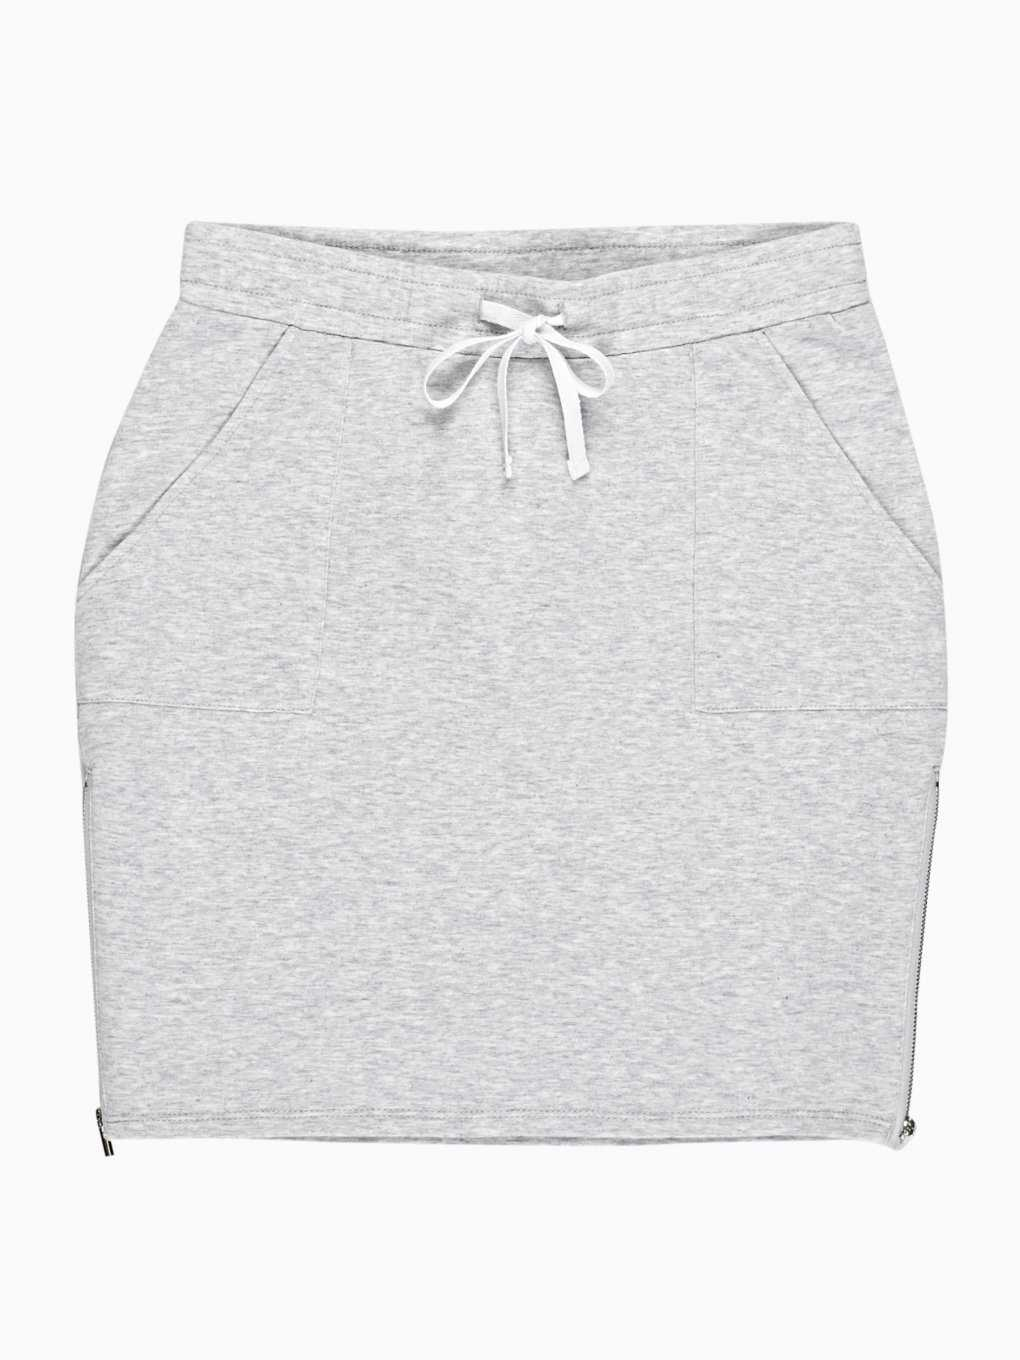 MINI SKIRT WITH SIDE ZIPPERS